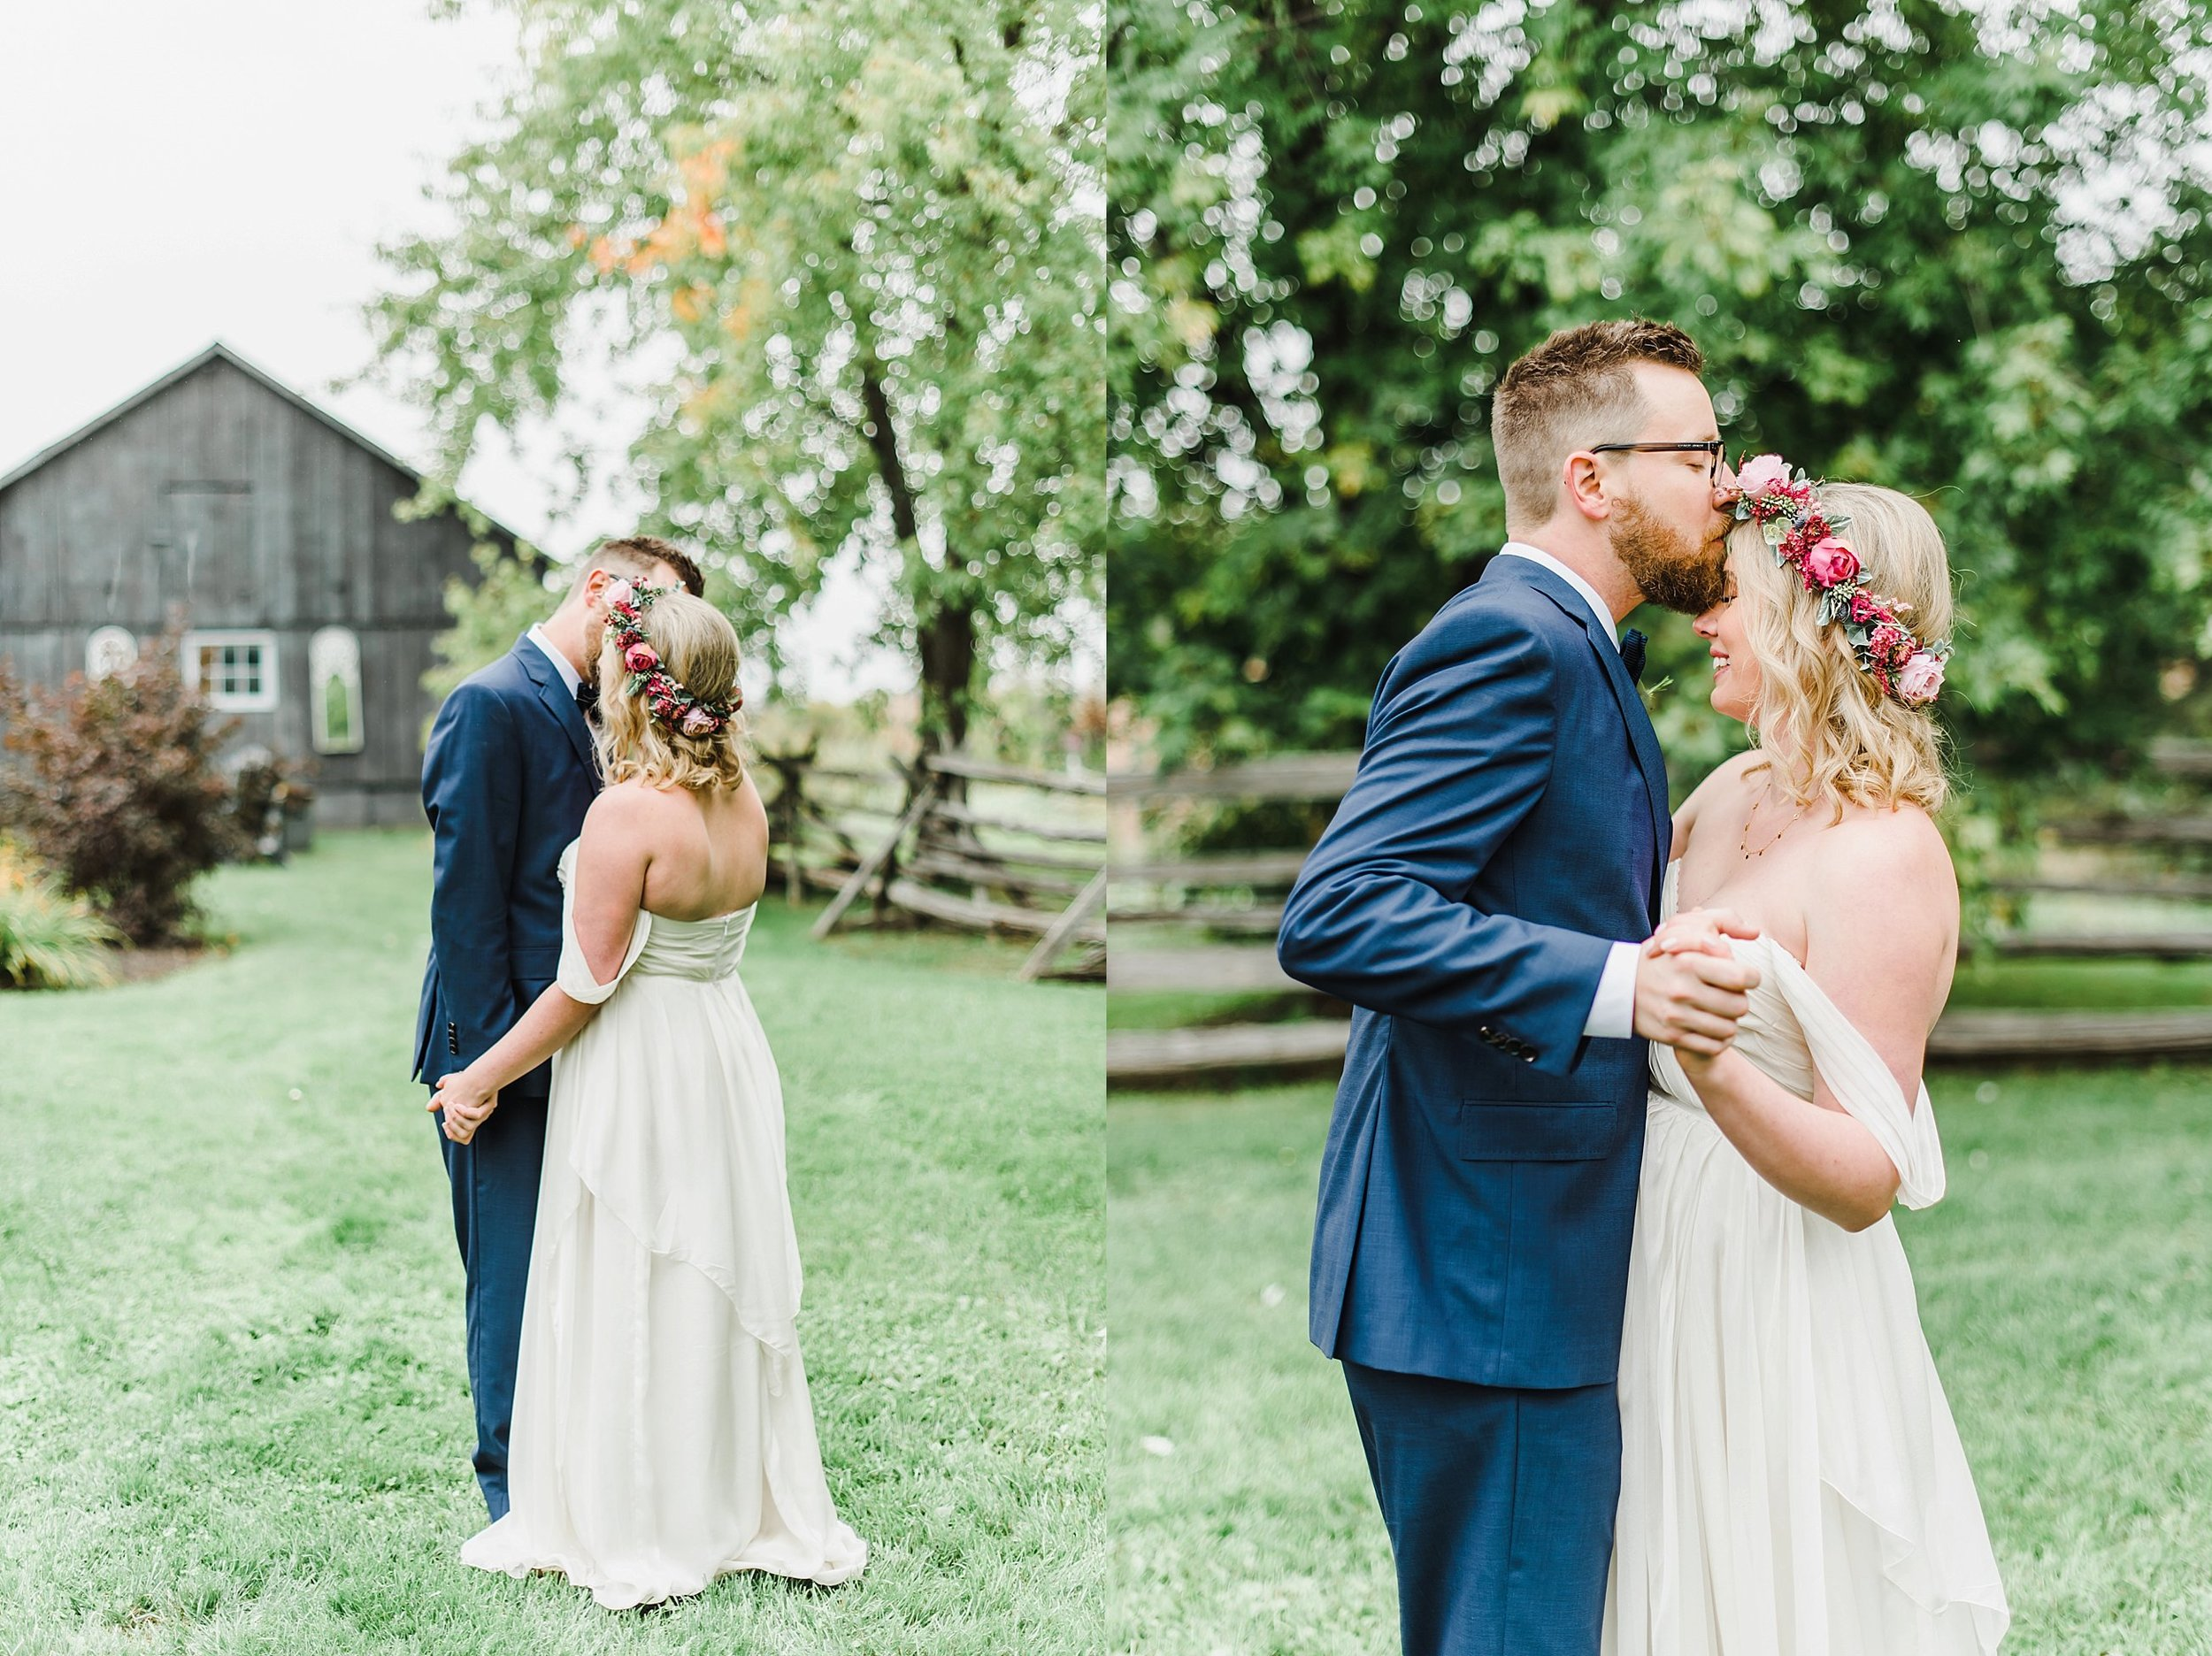 light airy indie fine art ottawa wedding photographer | Ali and Batoul Photography_0812.jpg